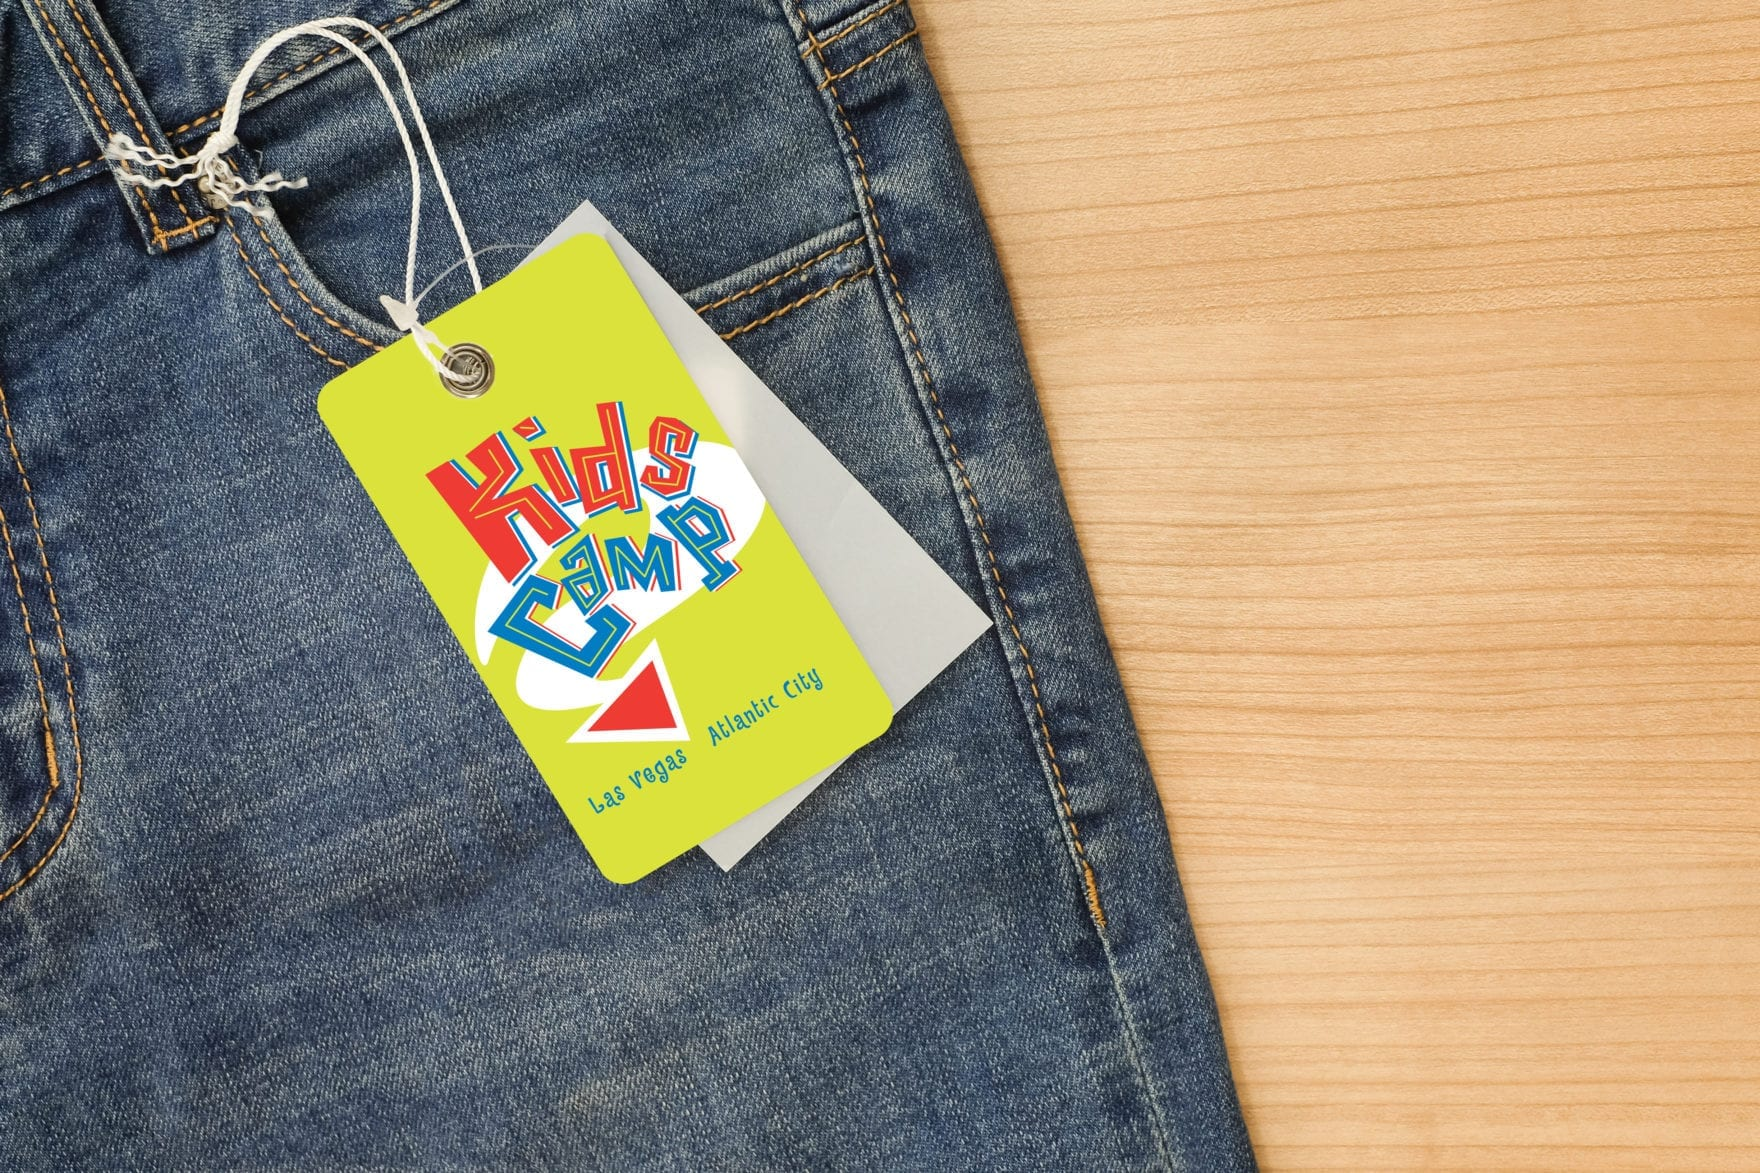 A pair of jeans with a tag for Kids Camp brand, designed by Canyon Creative